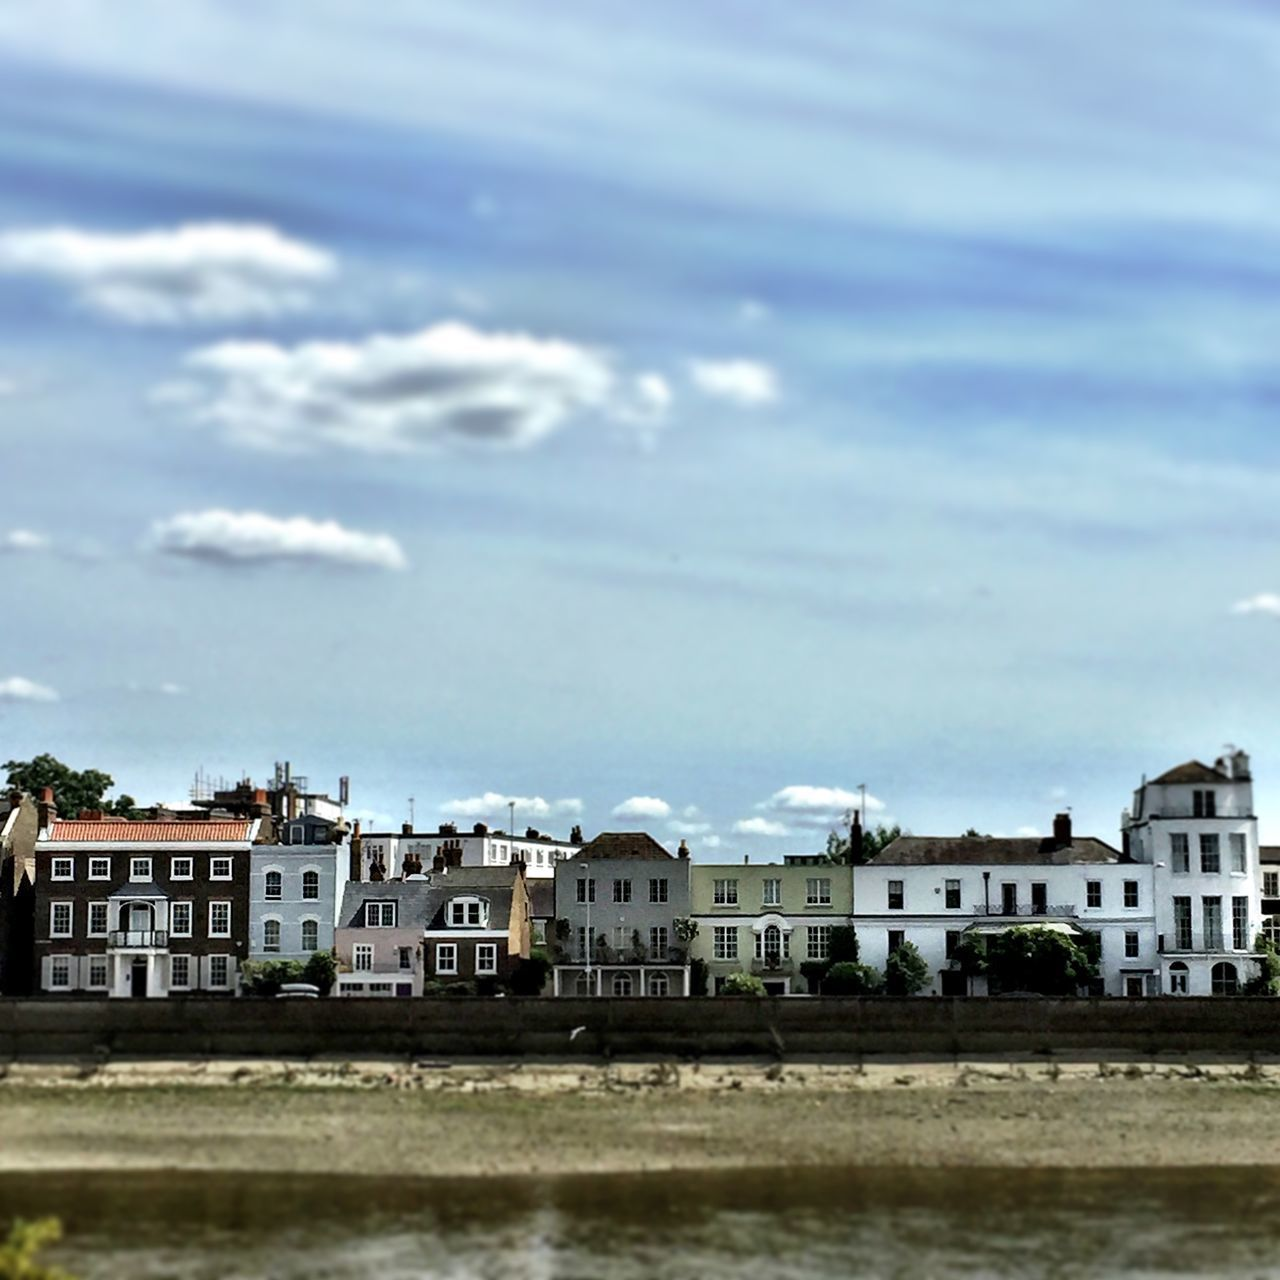 Houses By Thames River Against Sky